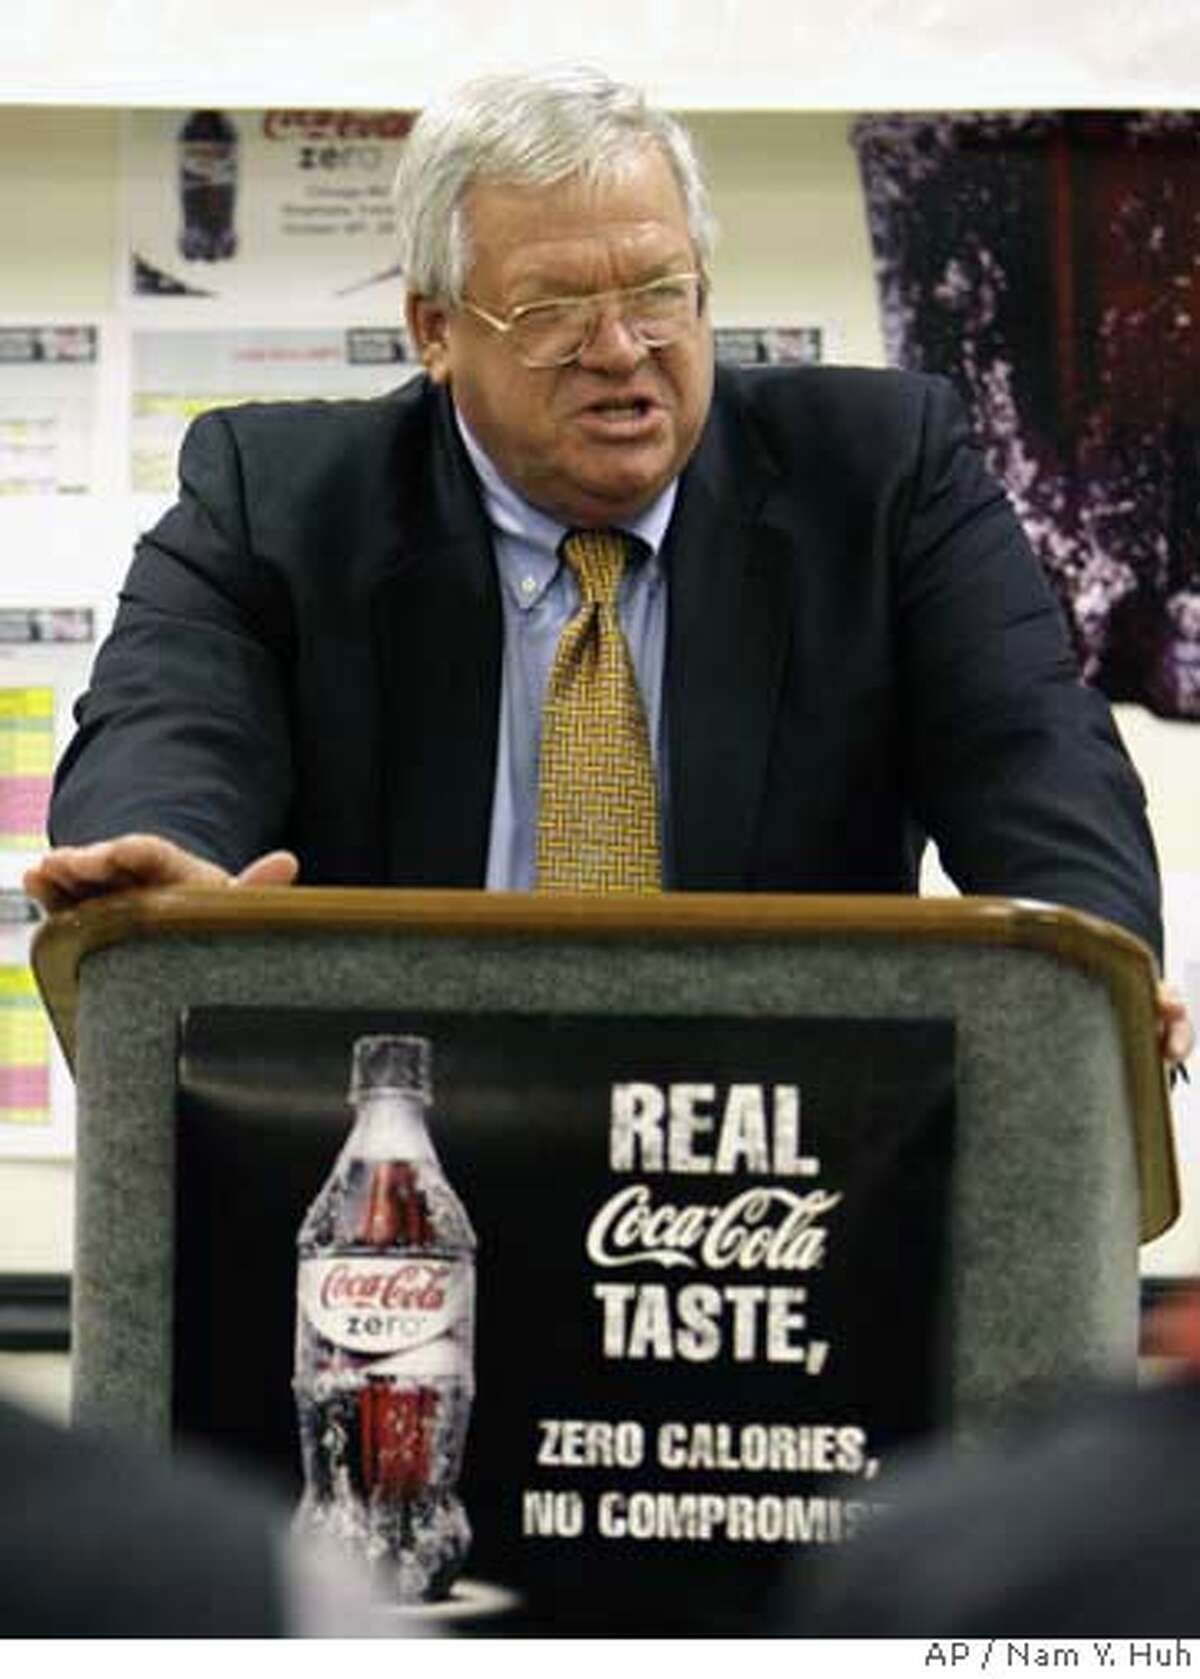 U.S. House Speaker Dennis Hastert, R-Ill., speaks to employees at the Coca-Cola Bottling Co. sales and distribution facility in St. Charles, Ill., Thursday, Nov. 2, 2006. (AP Photo/Nam Y. Huh)